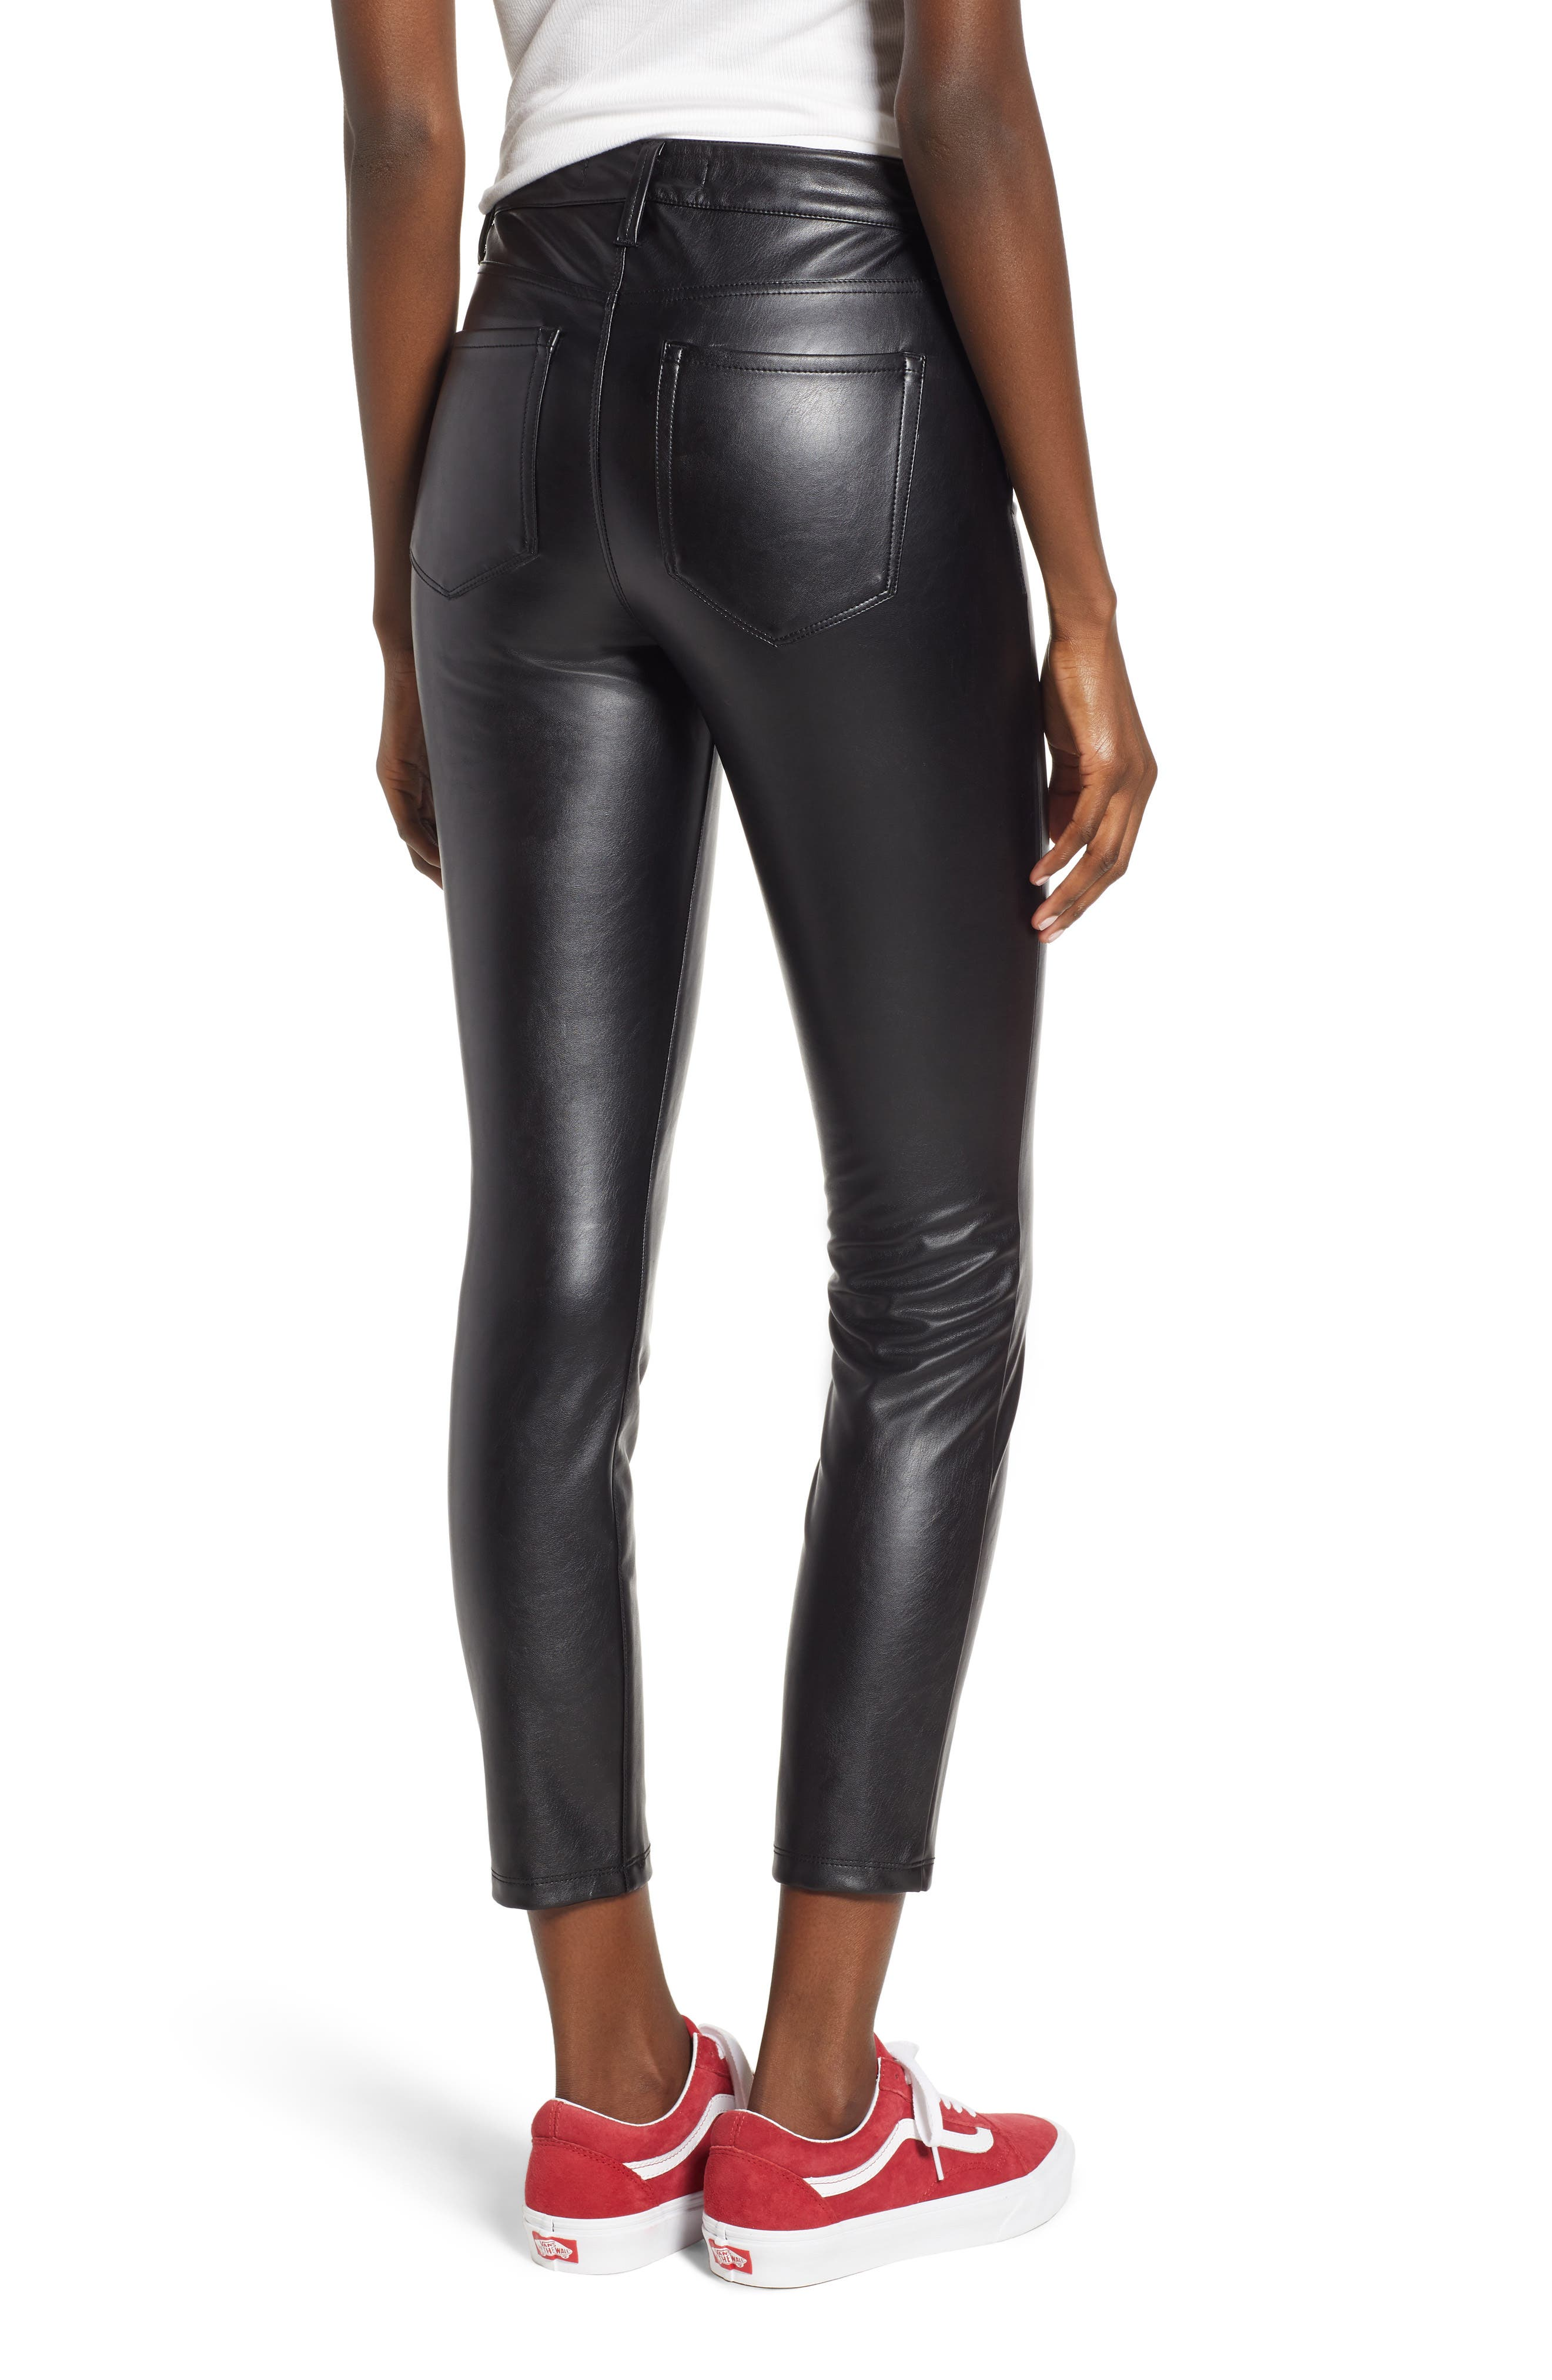 TINSEL, High Waist Faux Leather Skinny Pants, Alternate thumbnail 2, color, 001